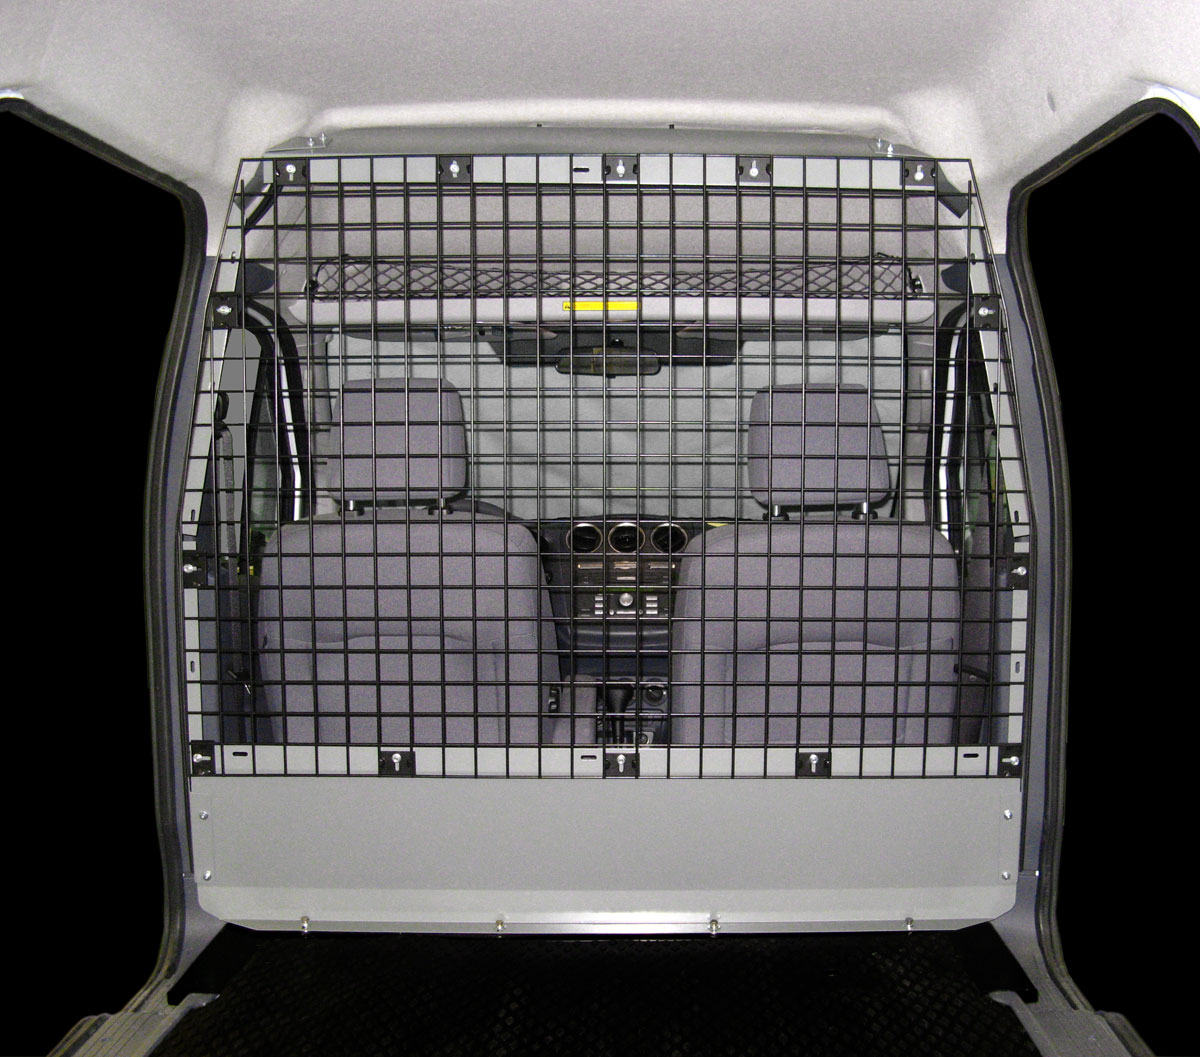 Partitions Jb Truck Body Inc 2007 Dodge Grand Caravan Minivan Wiring Diagram Can Upfit Your Van With An Adrian Steel Partition By Installing A Bulkhead